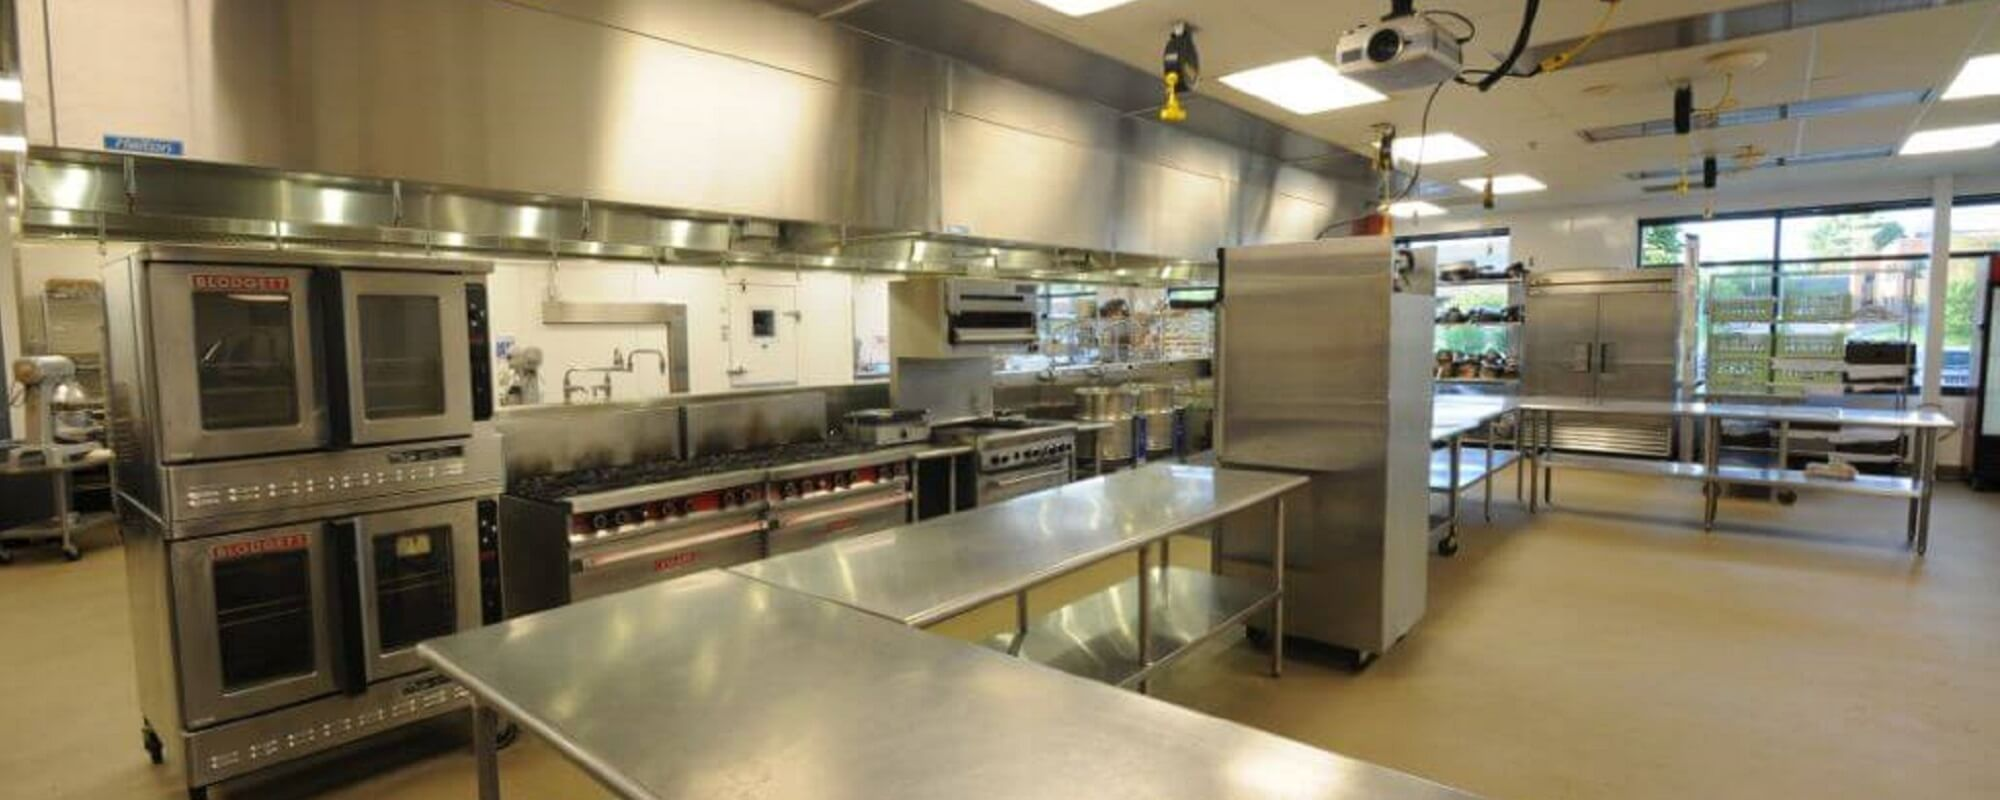 Le Cordon Bleu / Technique Restaurant